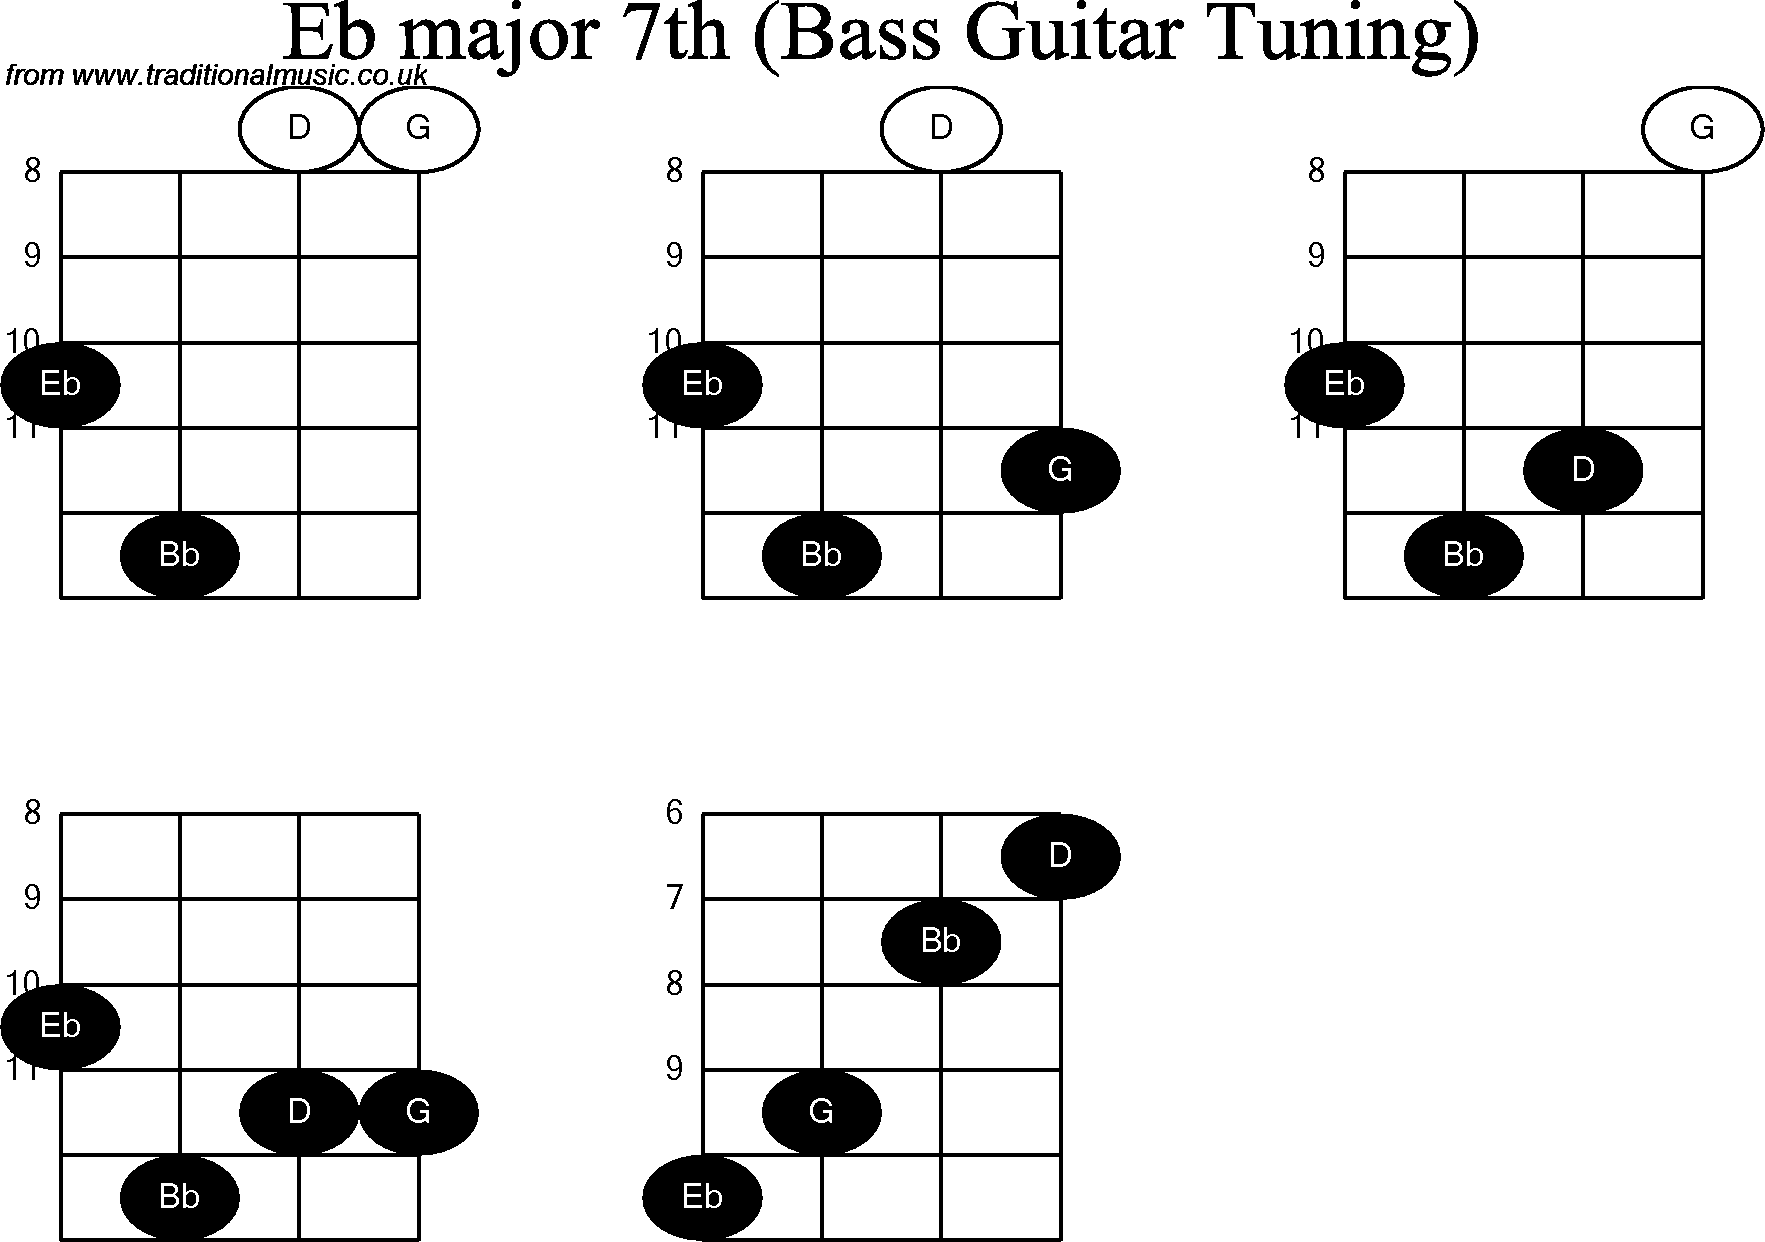 Bass Guitar Chord Diagrams For Eb Major 7th